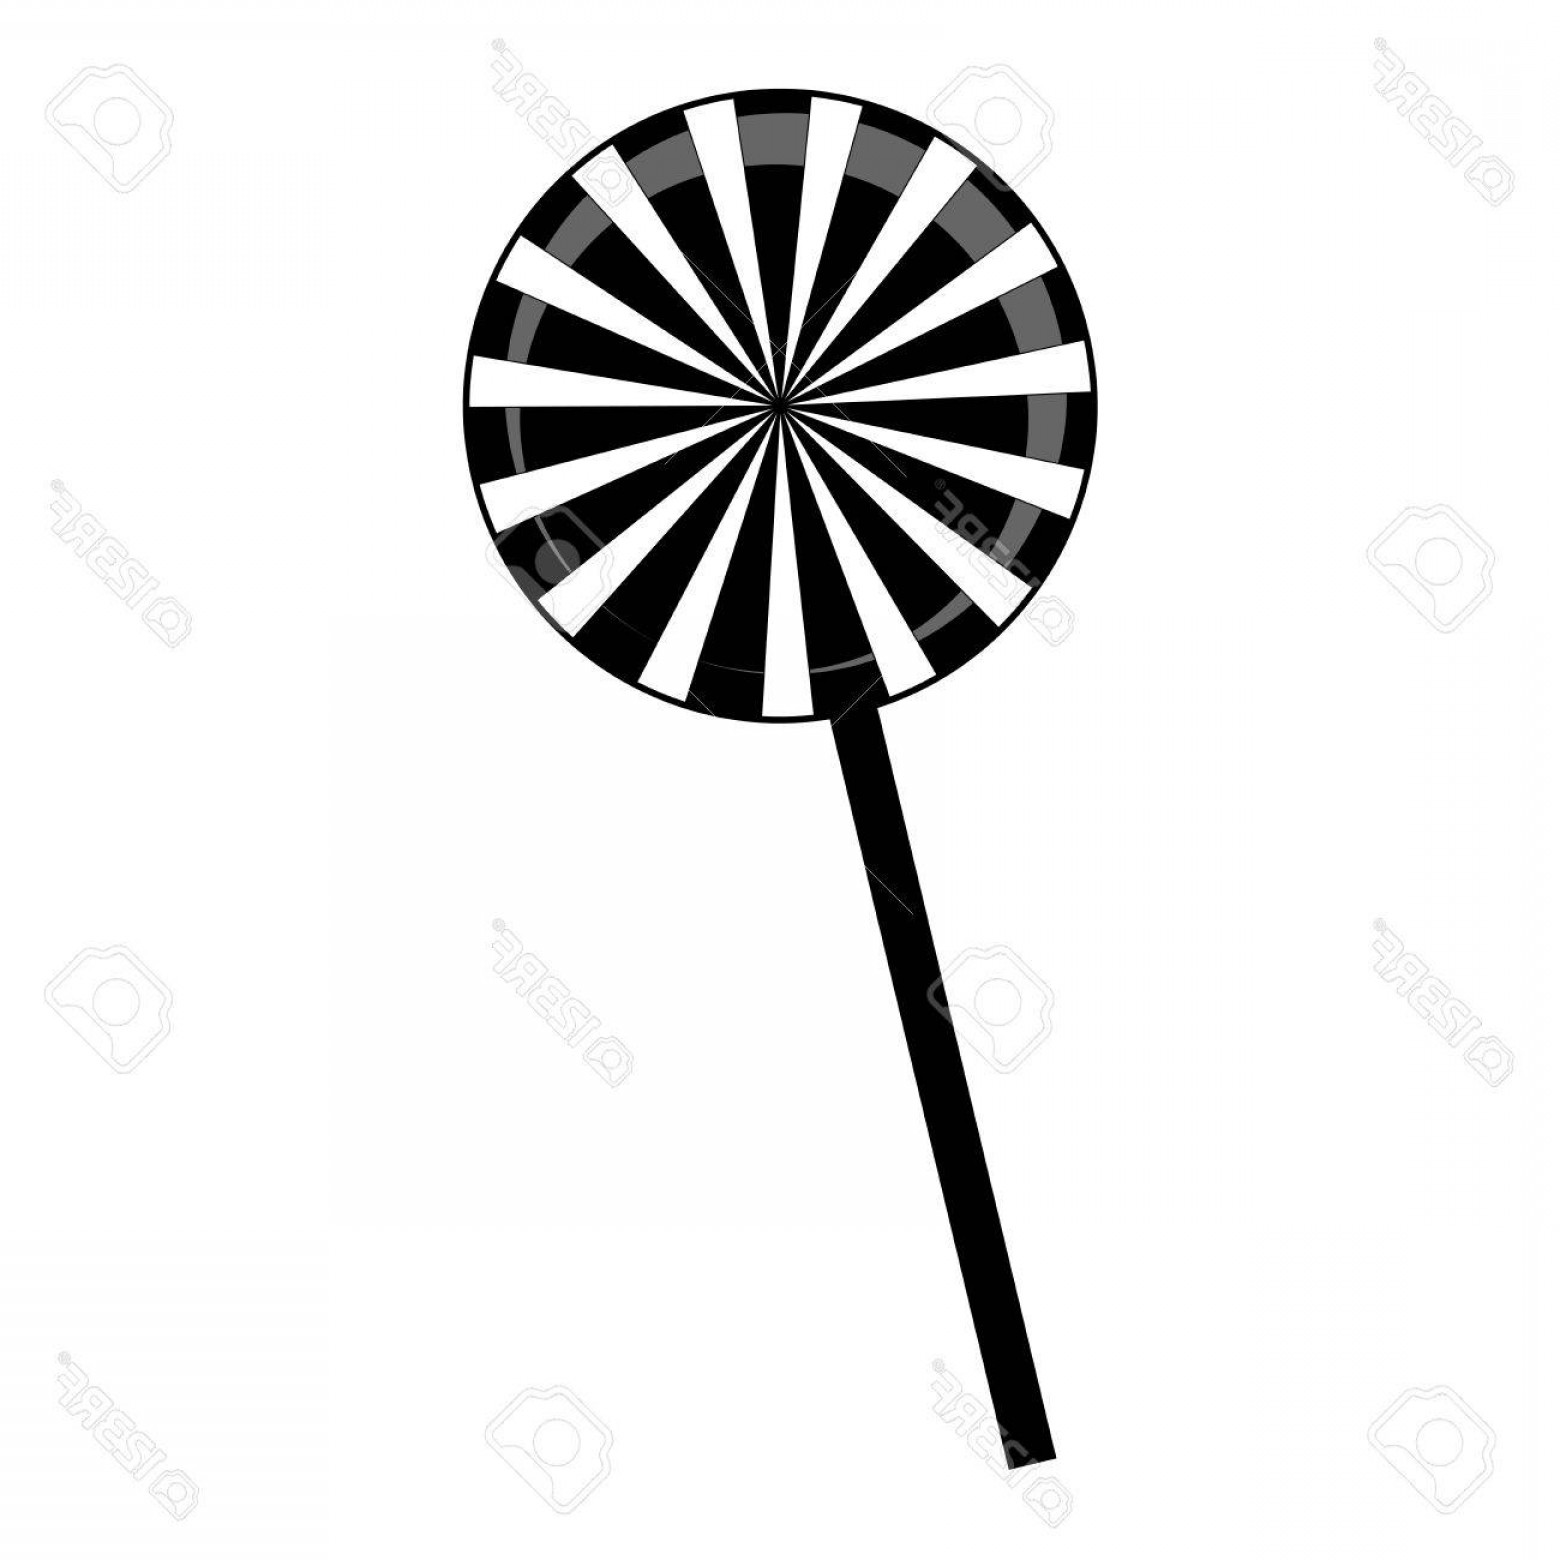 Lollipop Vector Silhouette: Photostock Vector Christmas Striped Lollipop Silhouette Spiral Sweet Candy With Black And White Stripes Vector Illustr